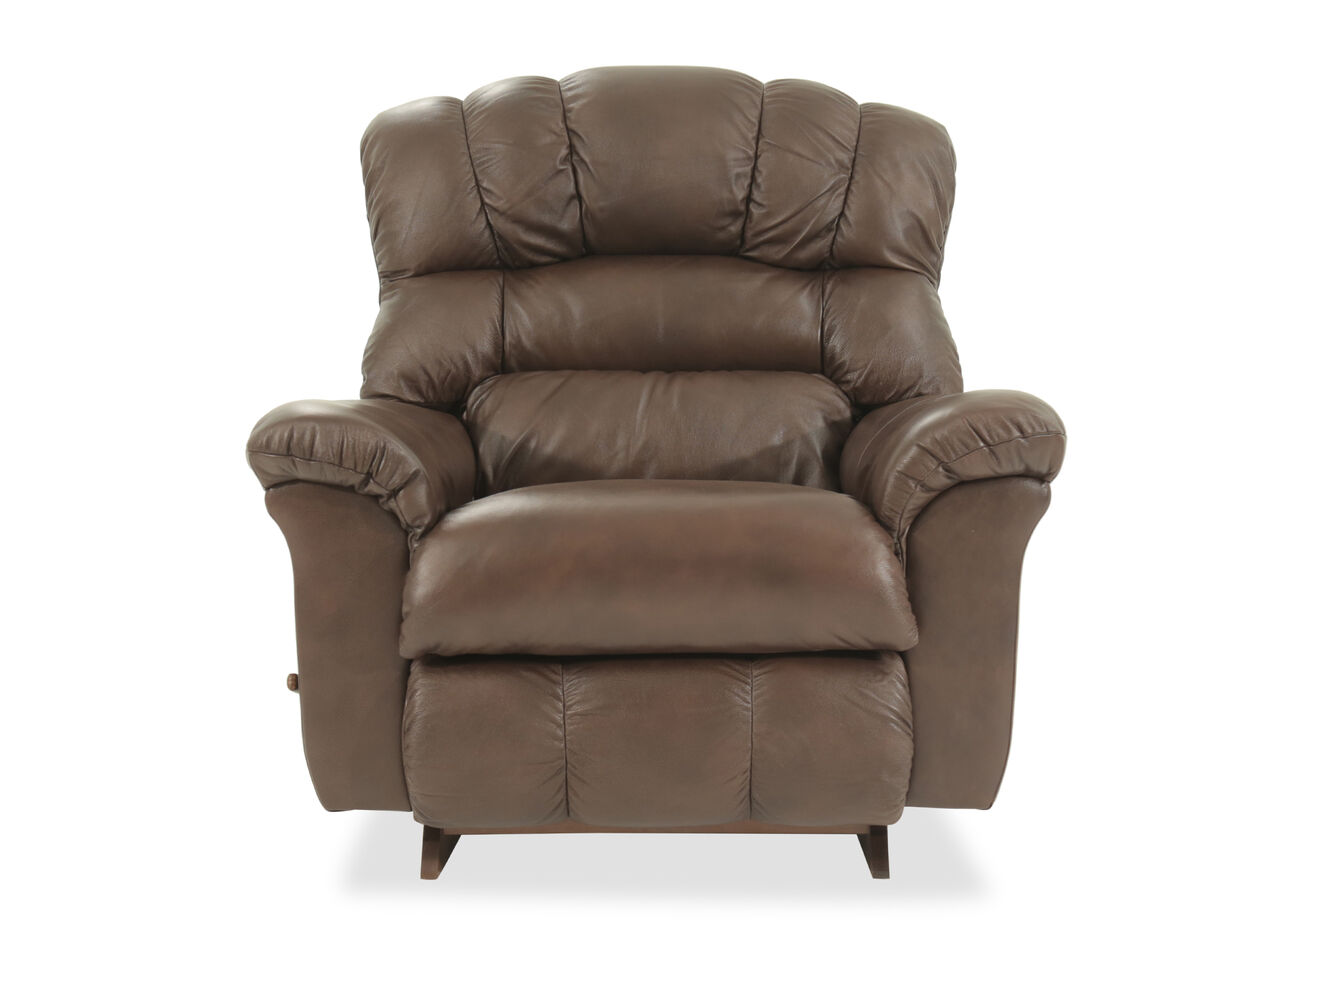 leather padded 46 rocker recliner in brown mathis brothers furniture. Black Bedroom Furniture Sets. Home Design Ideas